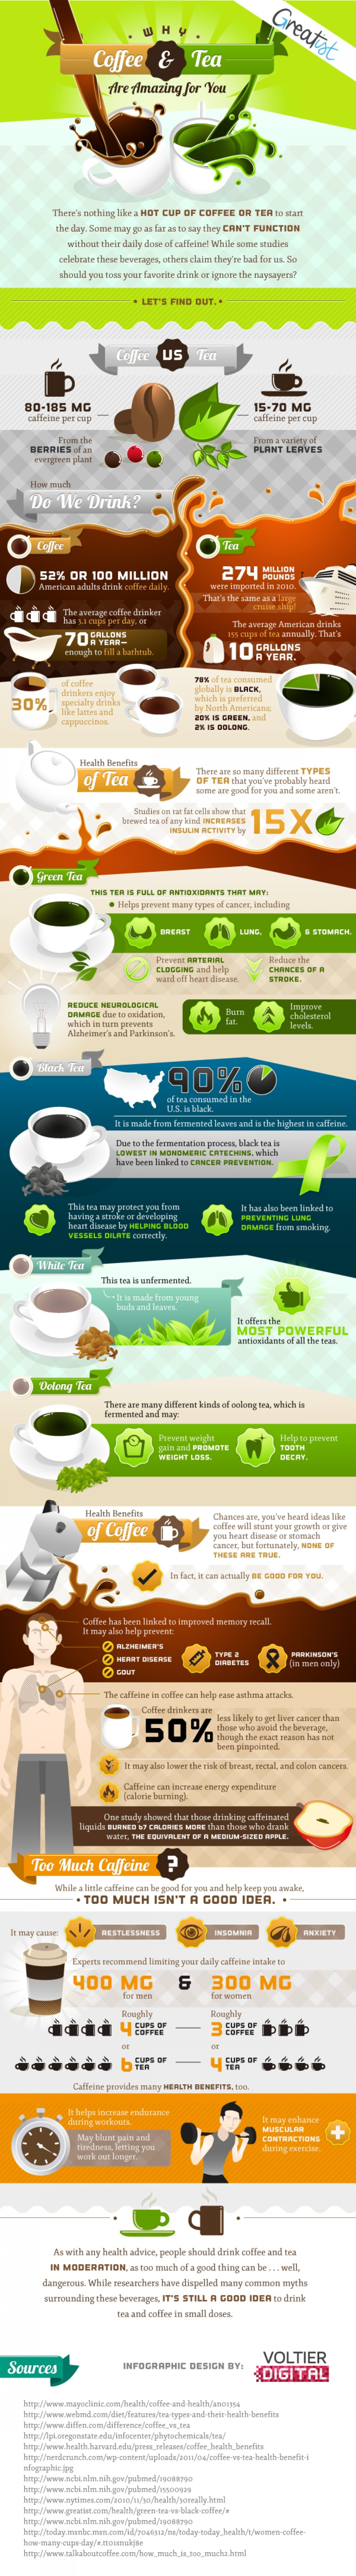 3. Why Coffee & Tea are Amazing for You